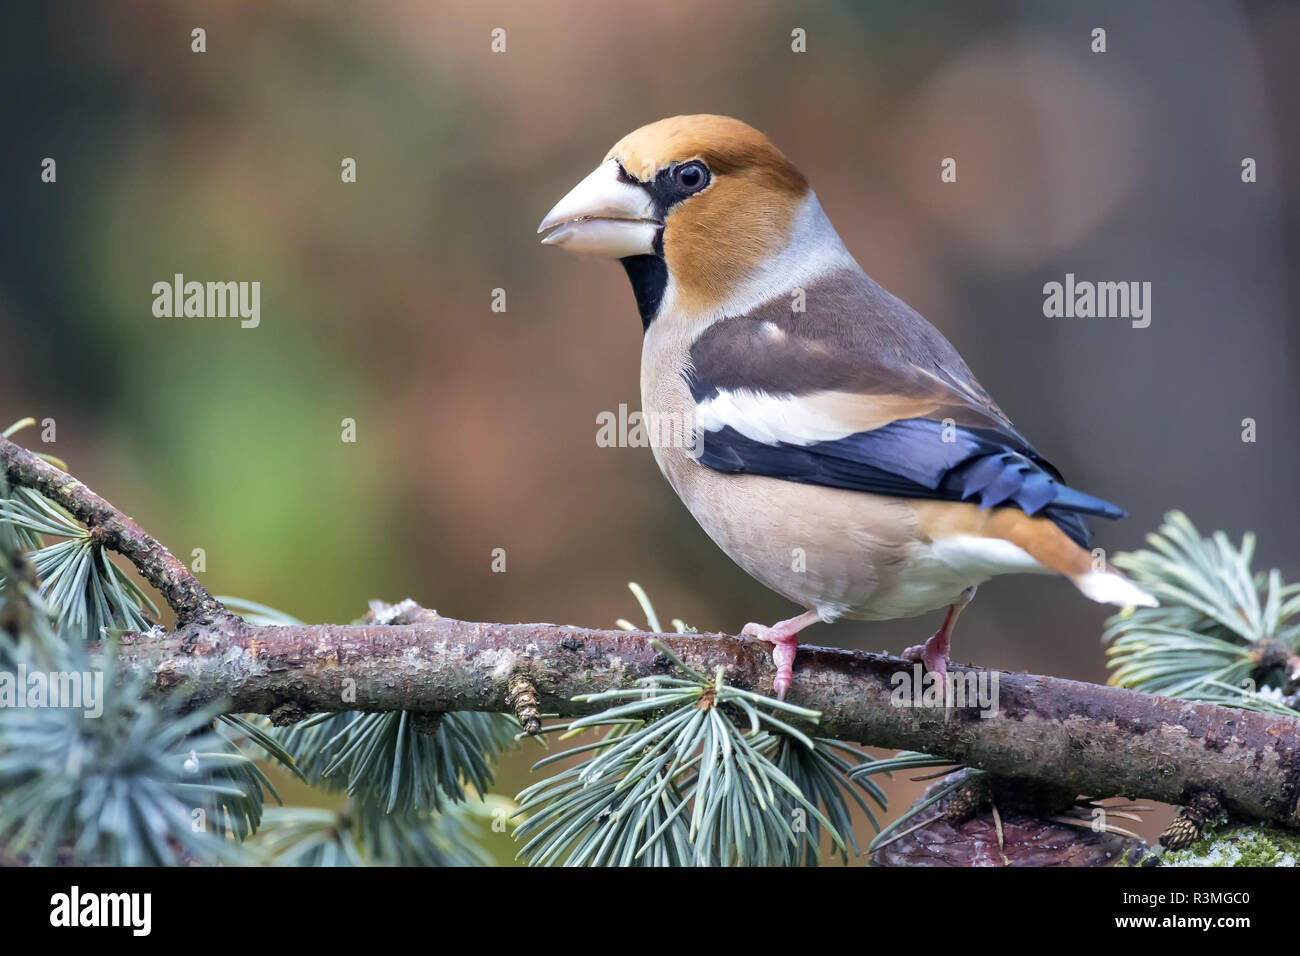 Hawfinch (Coccothraustes coccothraustes) male on a Cedar branch in winter, Country Garden, Lorraine, France - Stock Image